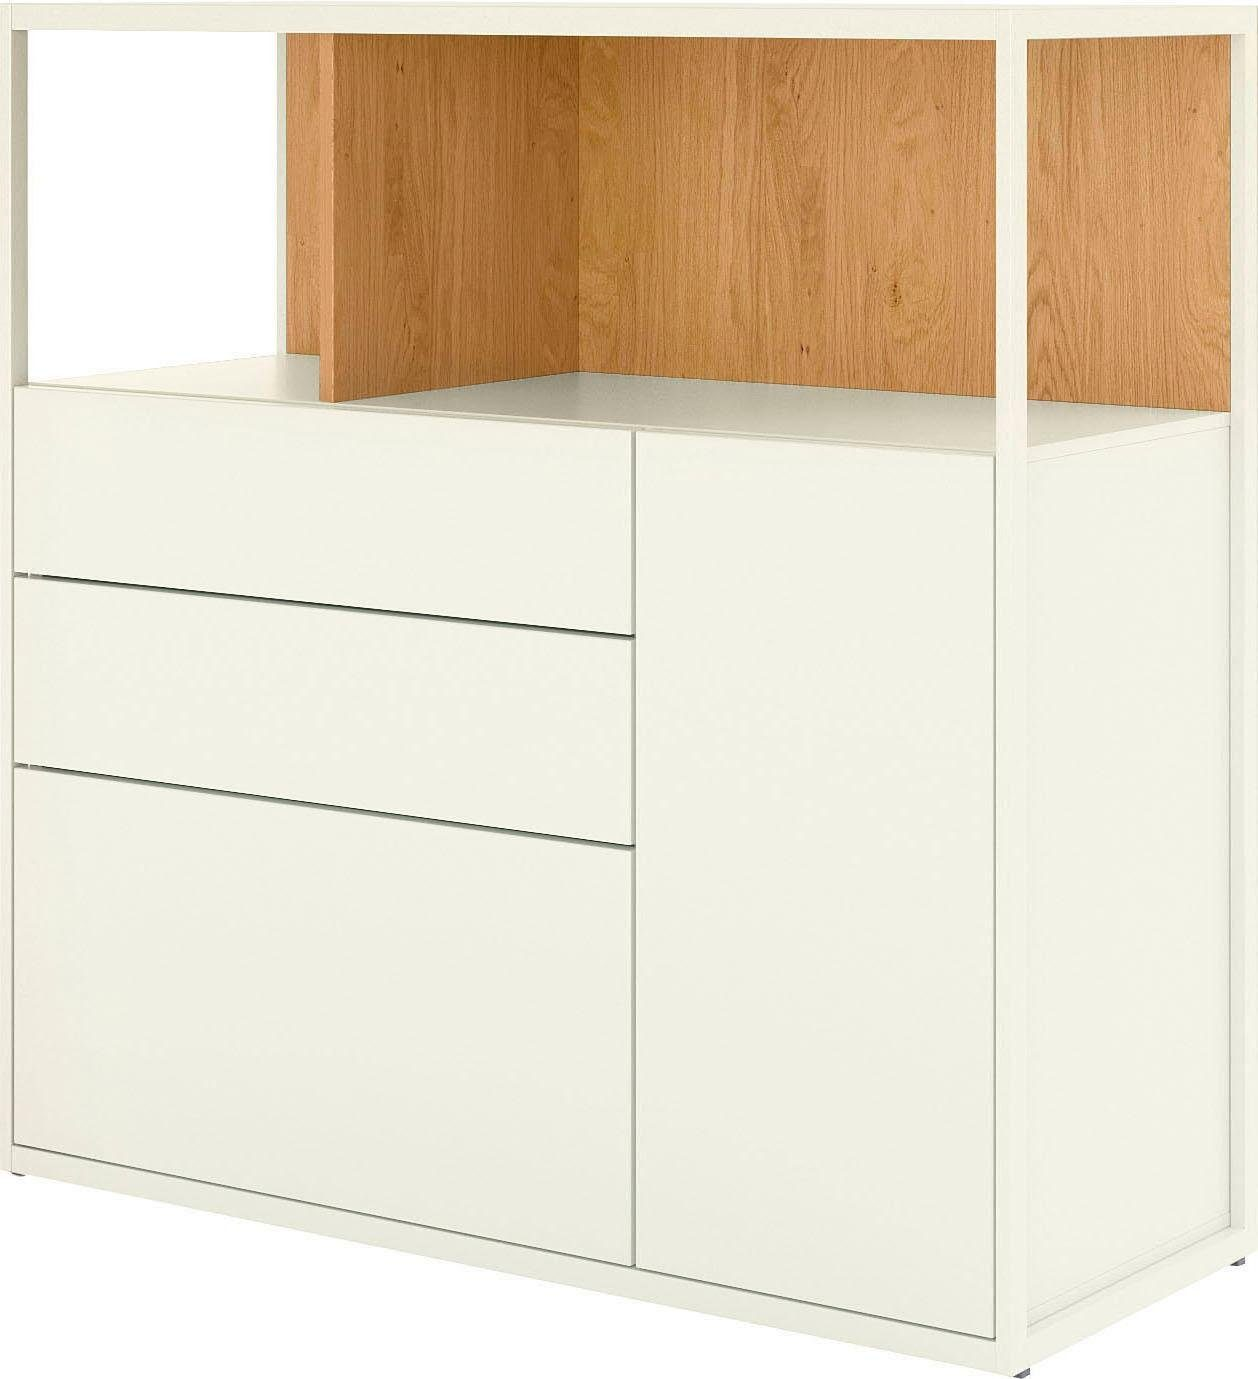 Highboard Küche Deko Now! By Hülsta Highboard »now! Vision«, Breite 108, 7 Cm